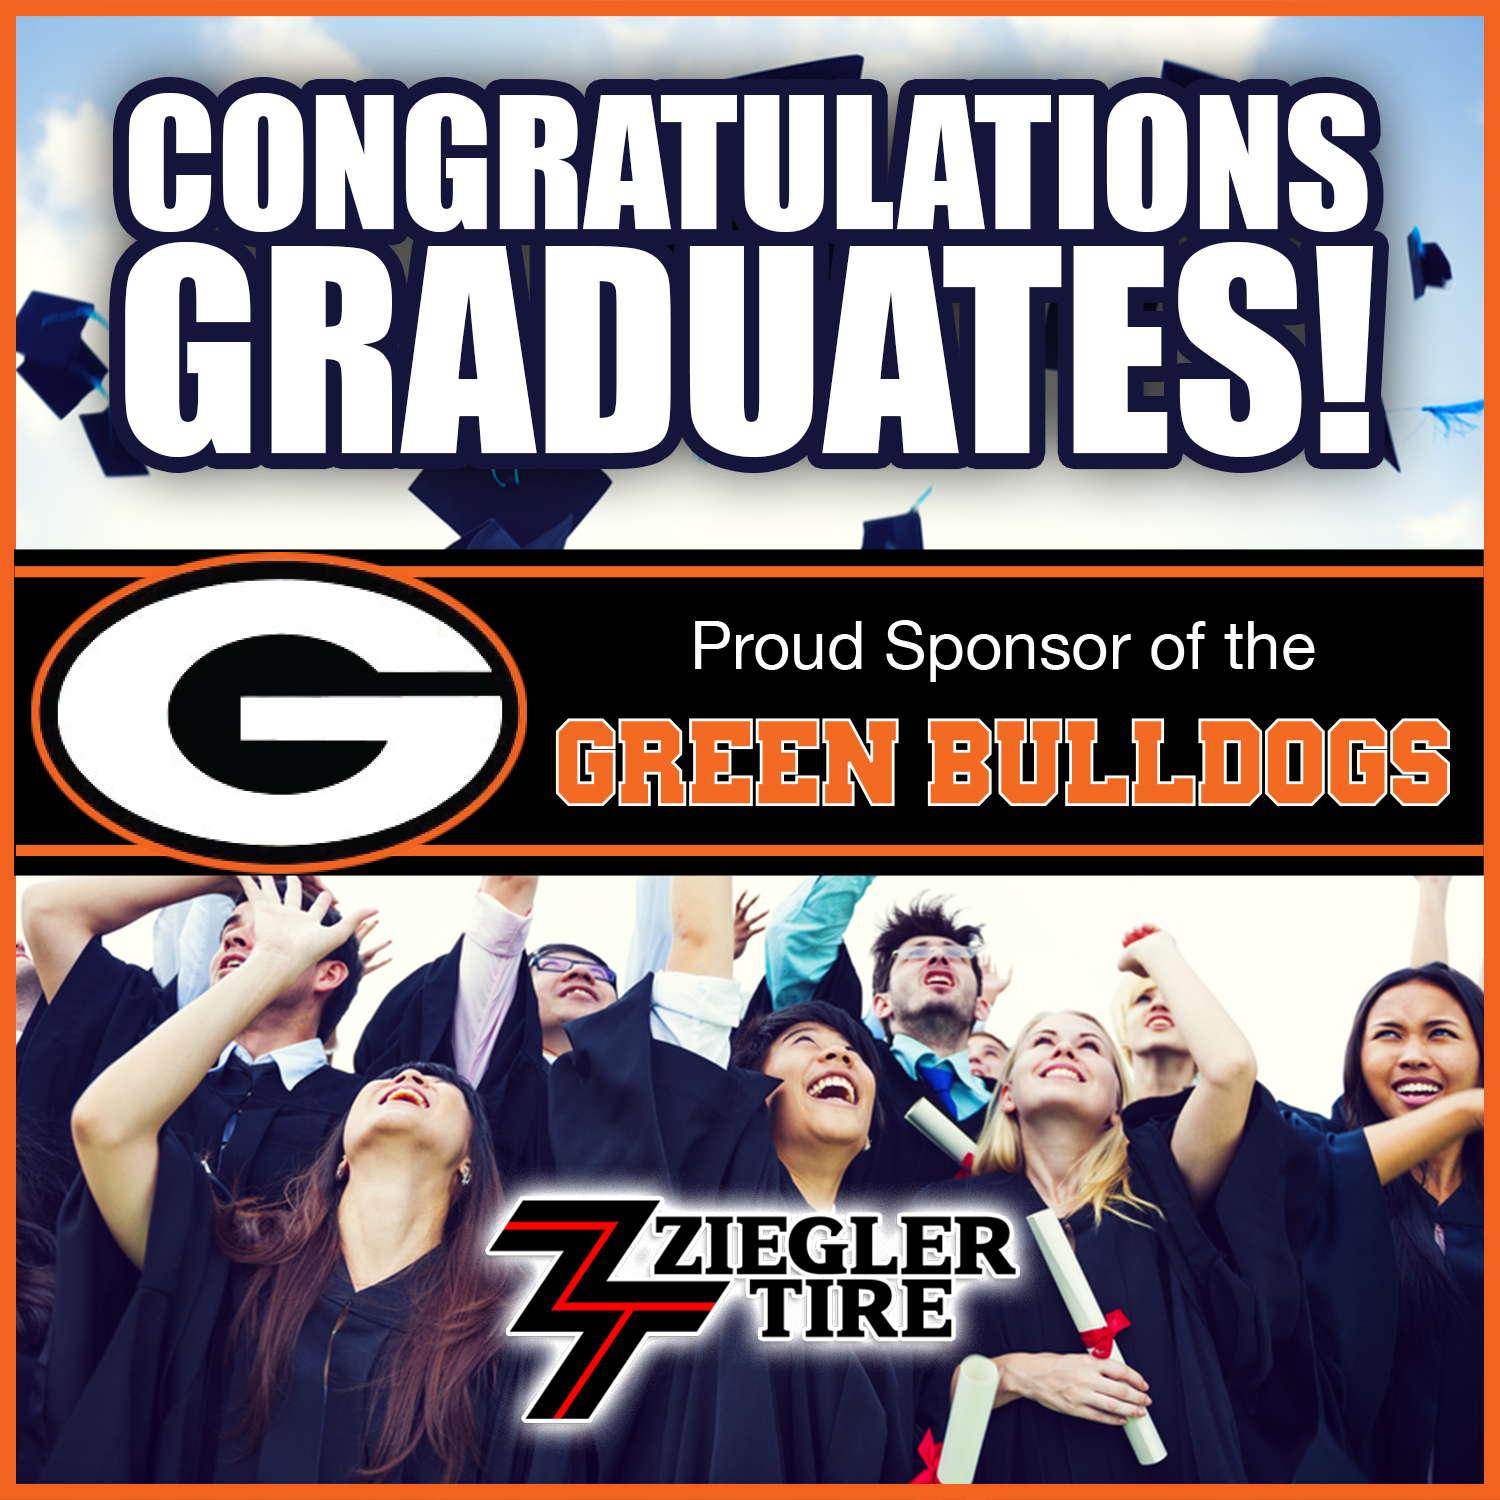 Green Bulldogs Graduation